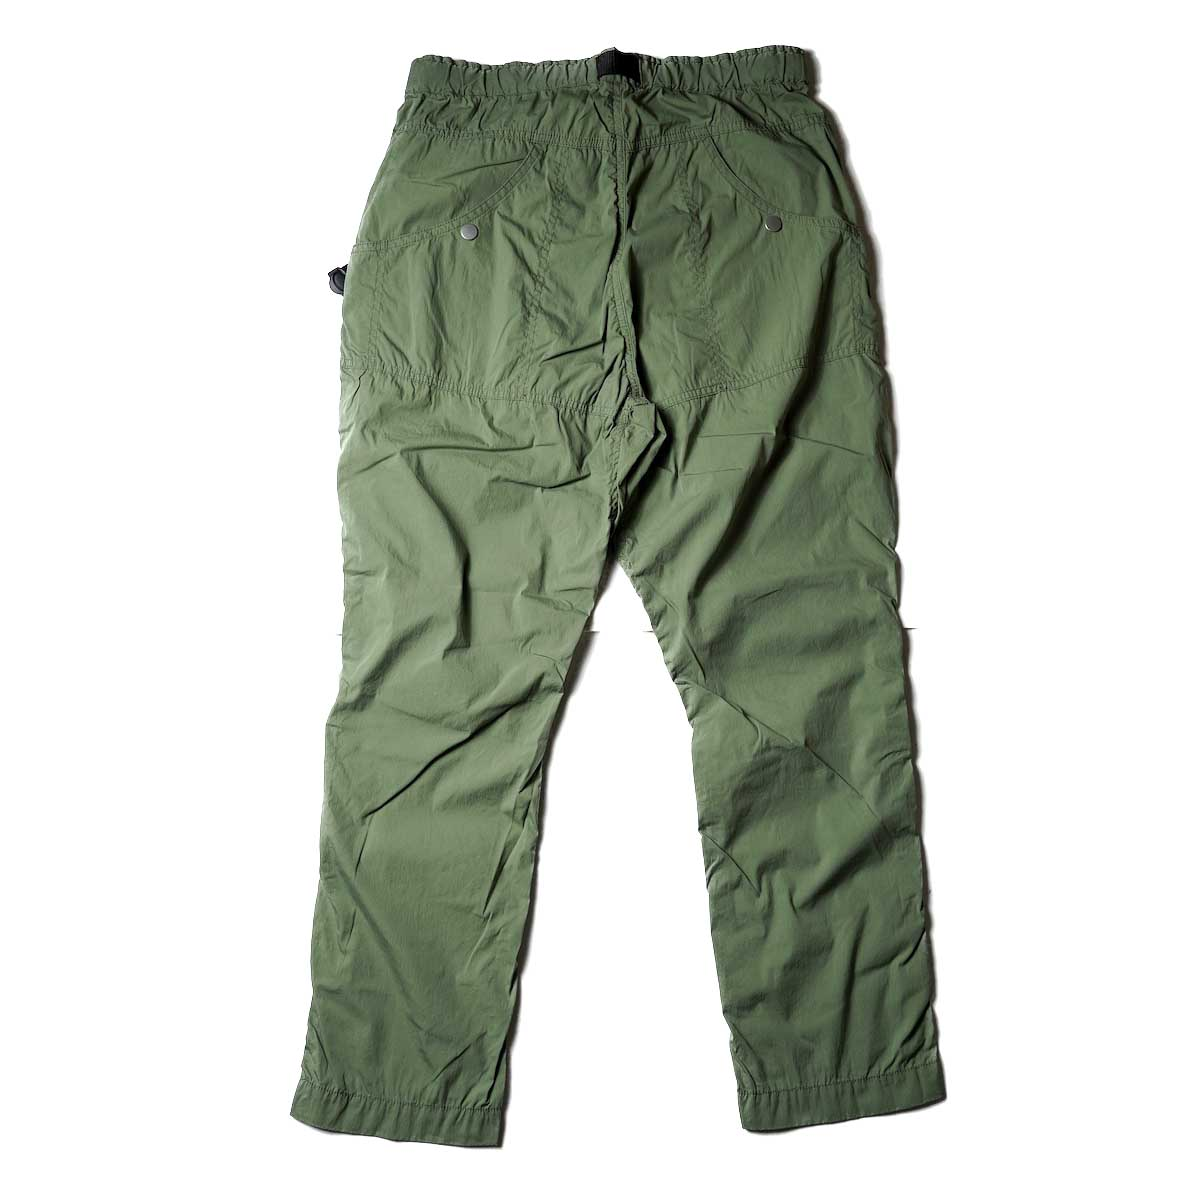 nonnative / ALPINIST EASY PANTS C/N TYPEWRITER WITH FIDLOCK® BUCKLE (Olive)背面